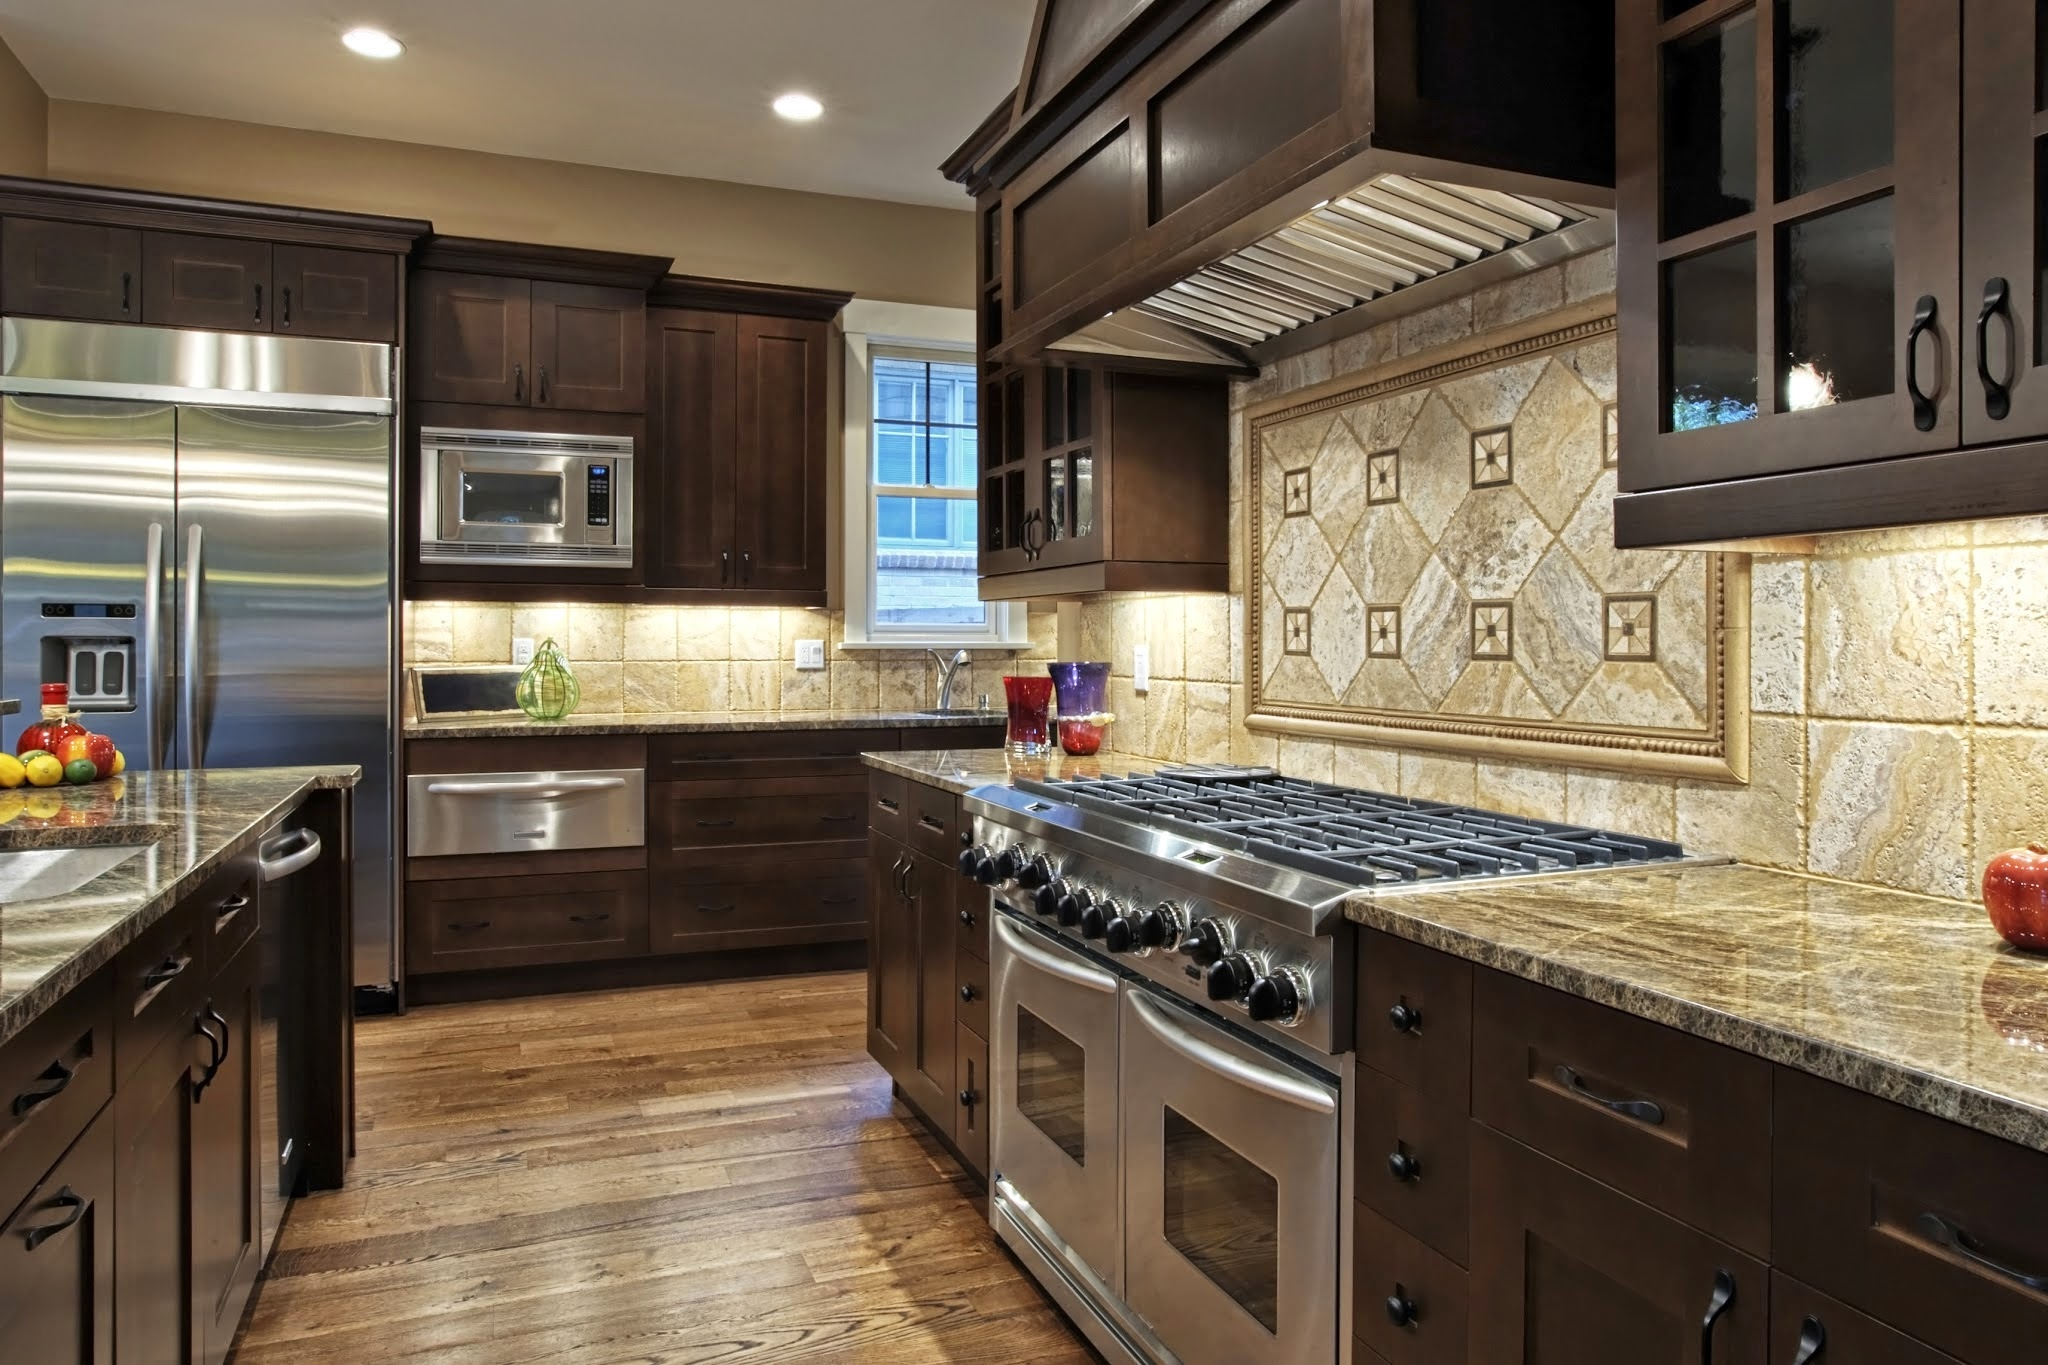 Kitchen Countertops And Cabinets Matches